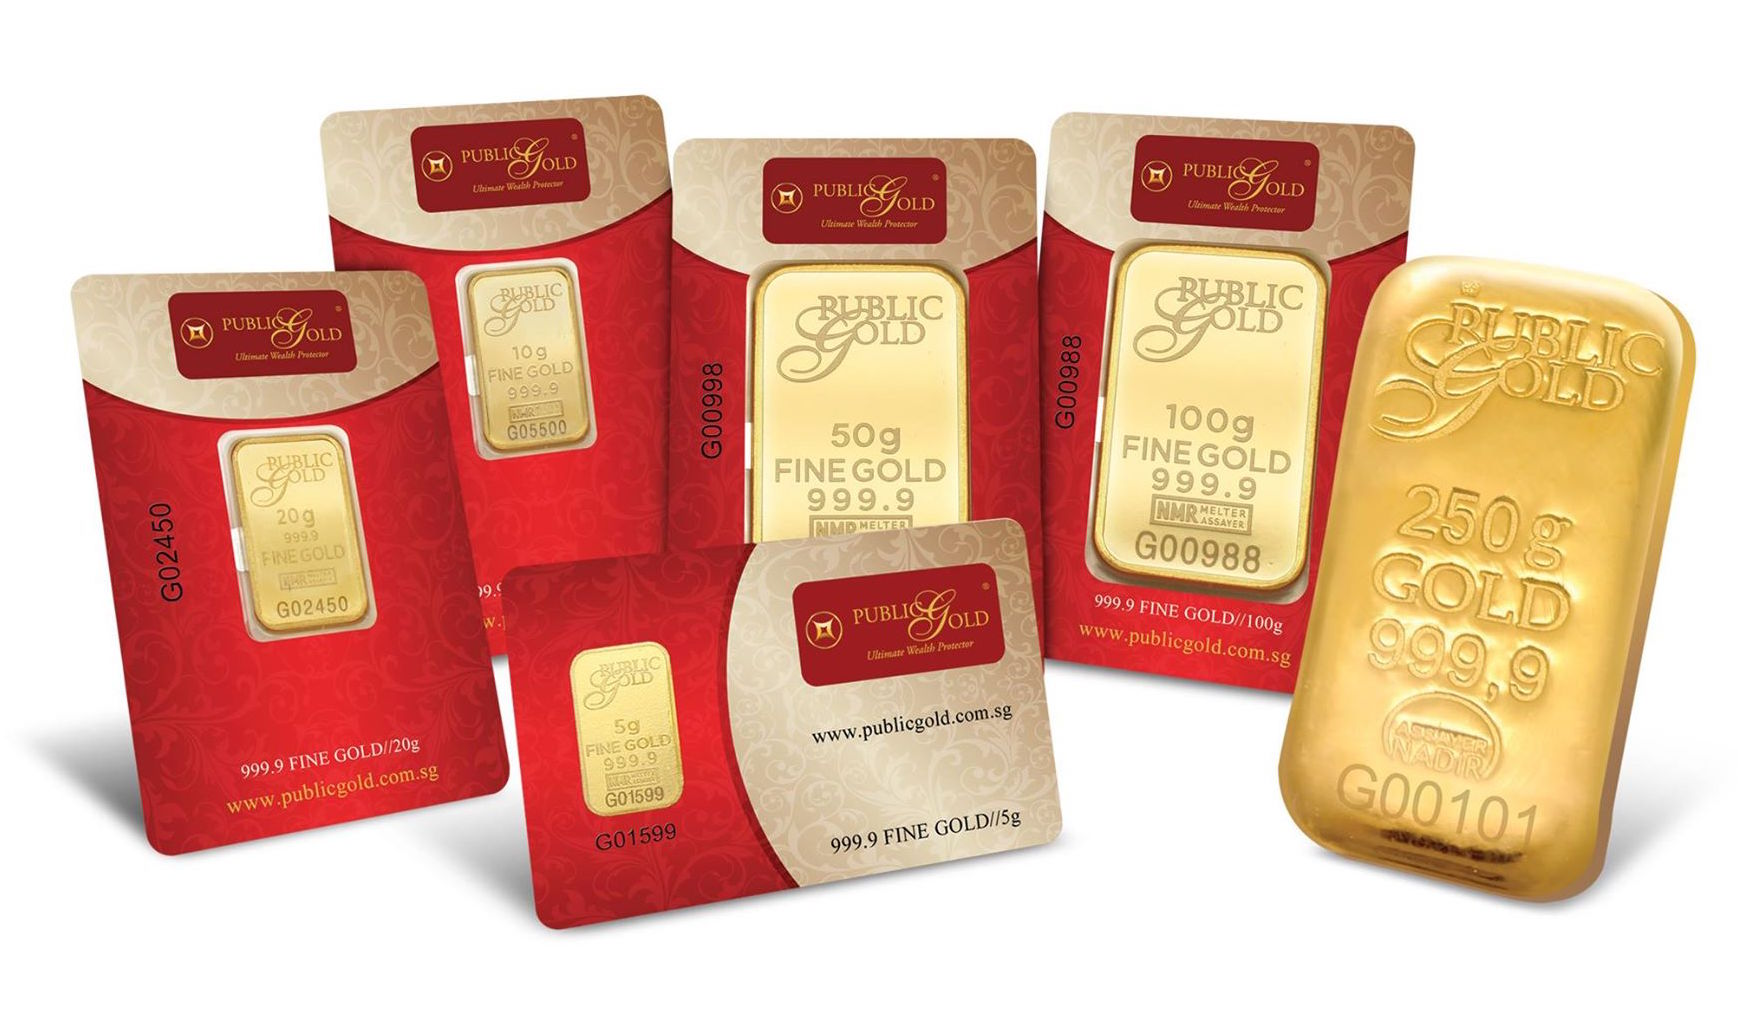 gold bar 999 24k lmba public gold